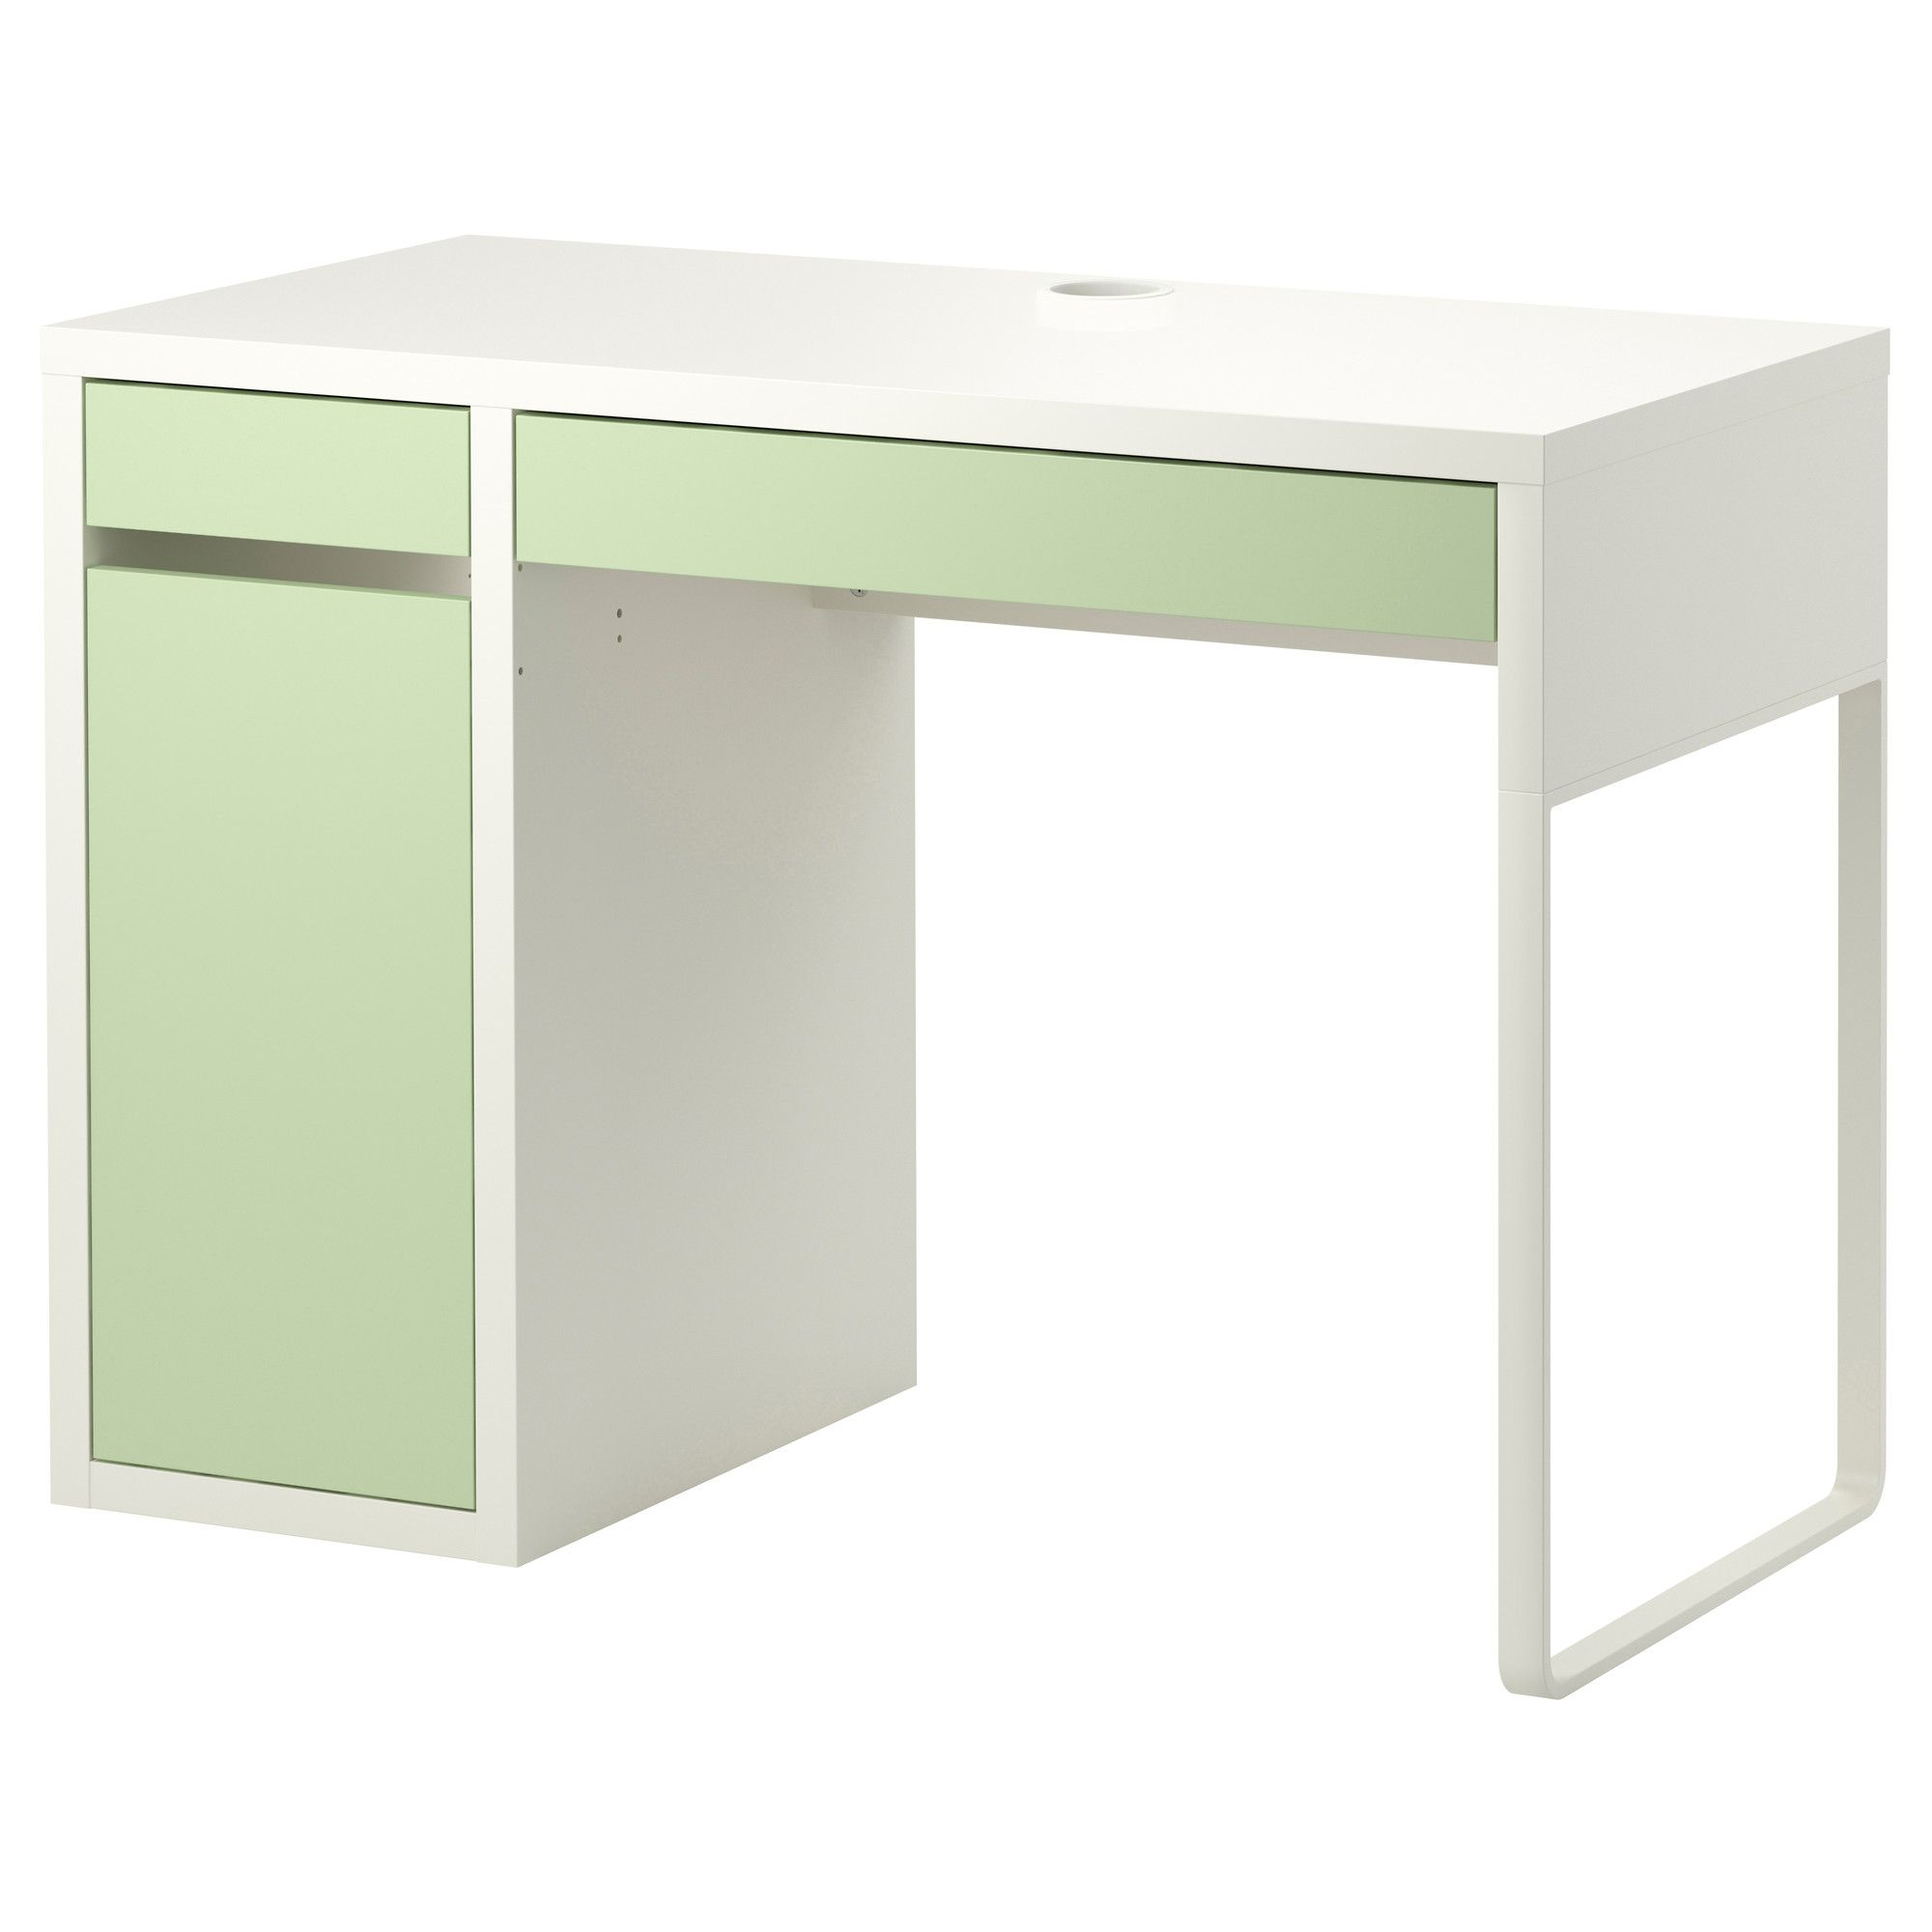 Küchentresen Ikea ~ micke desk white light green ikea brionna's room pinterest micke desk, bureaus and desks